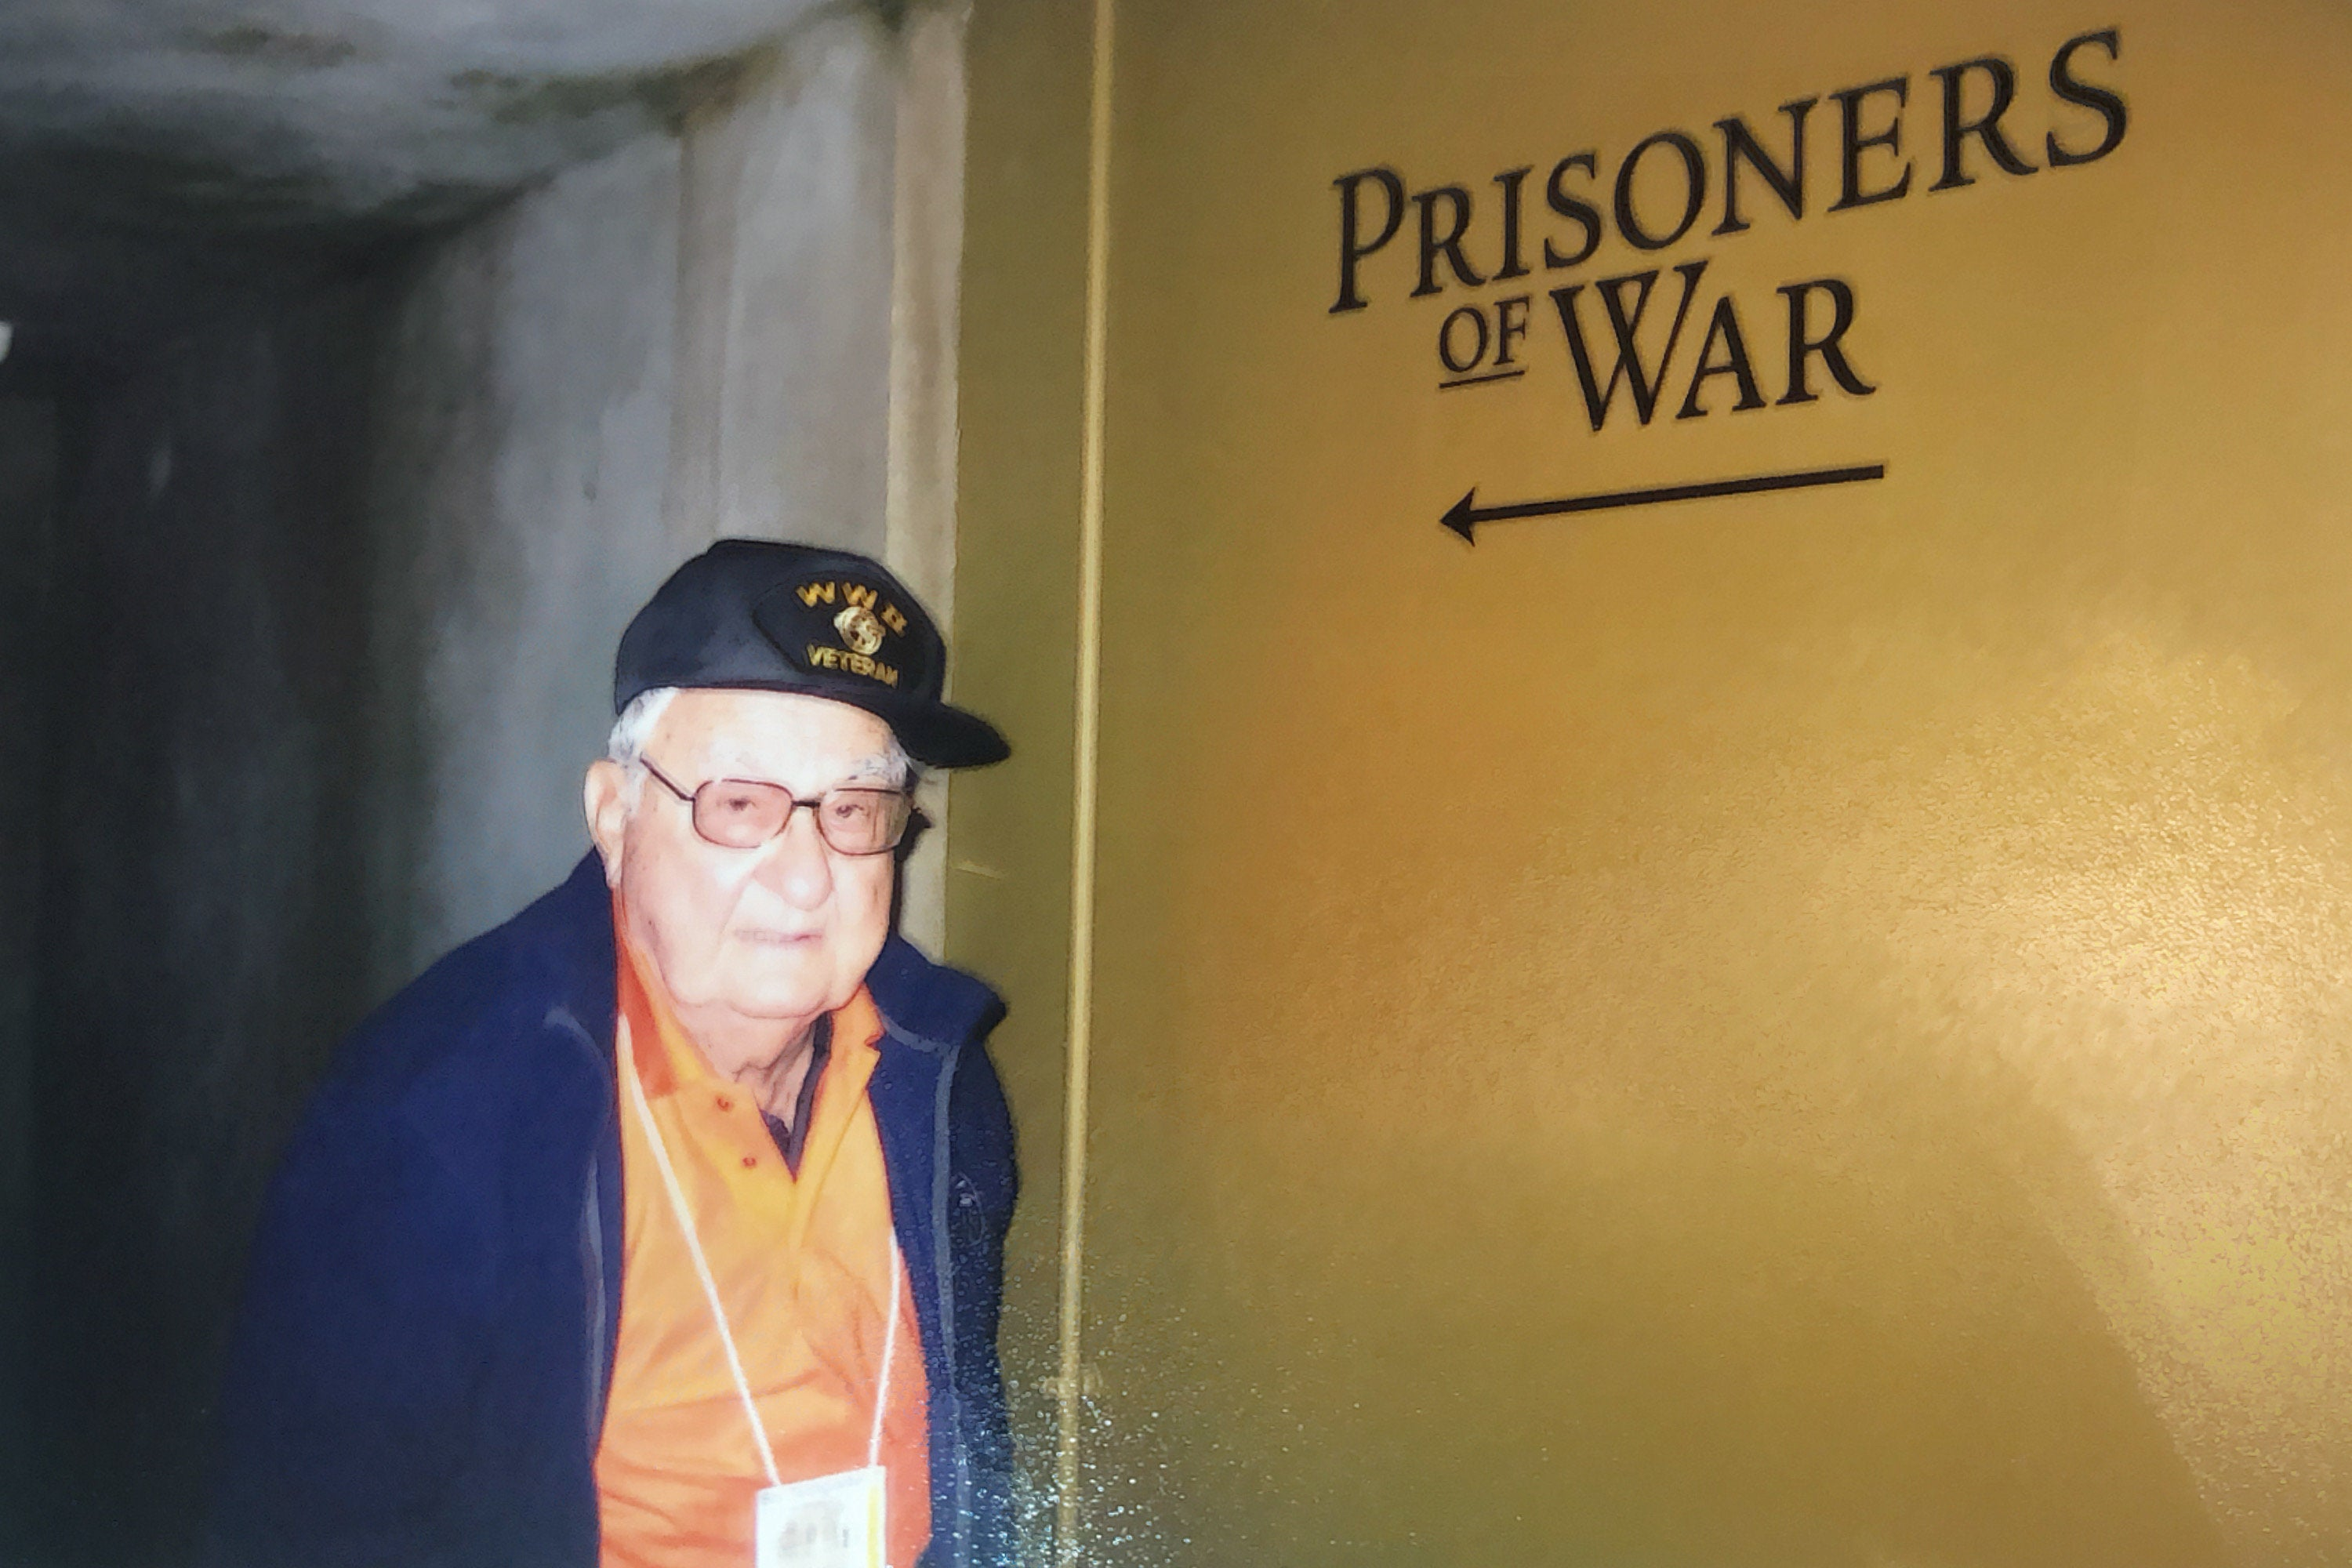 Veteran who spent 421 days as a prisoner of war turns 100